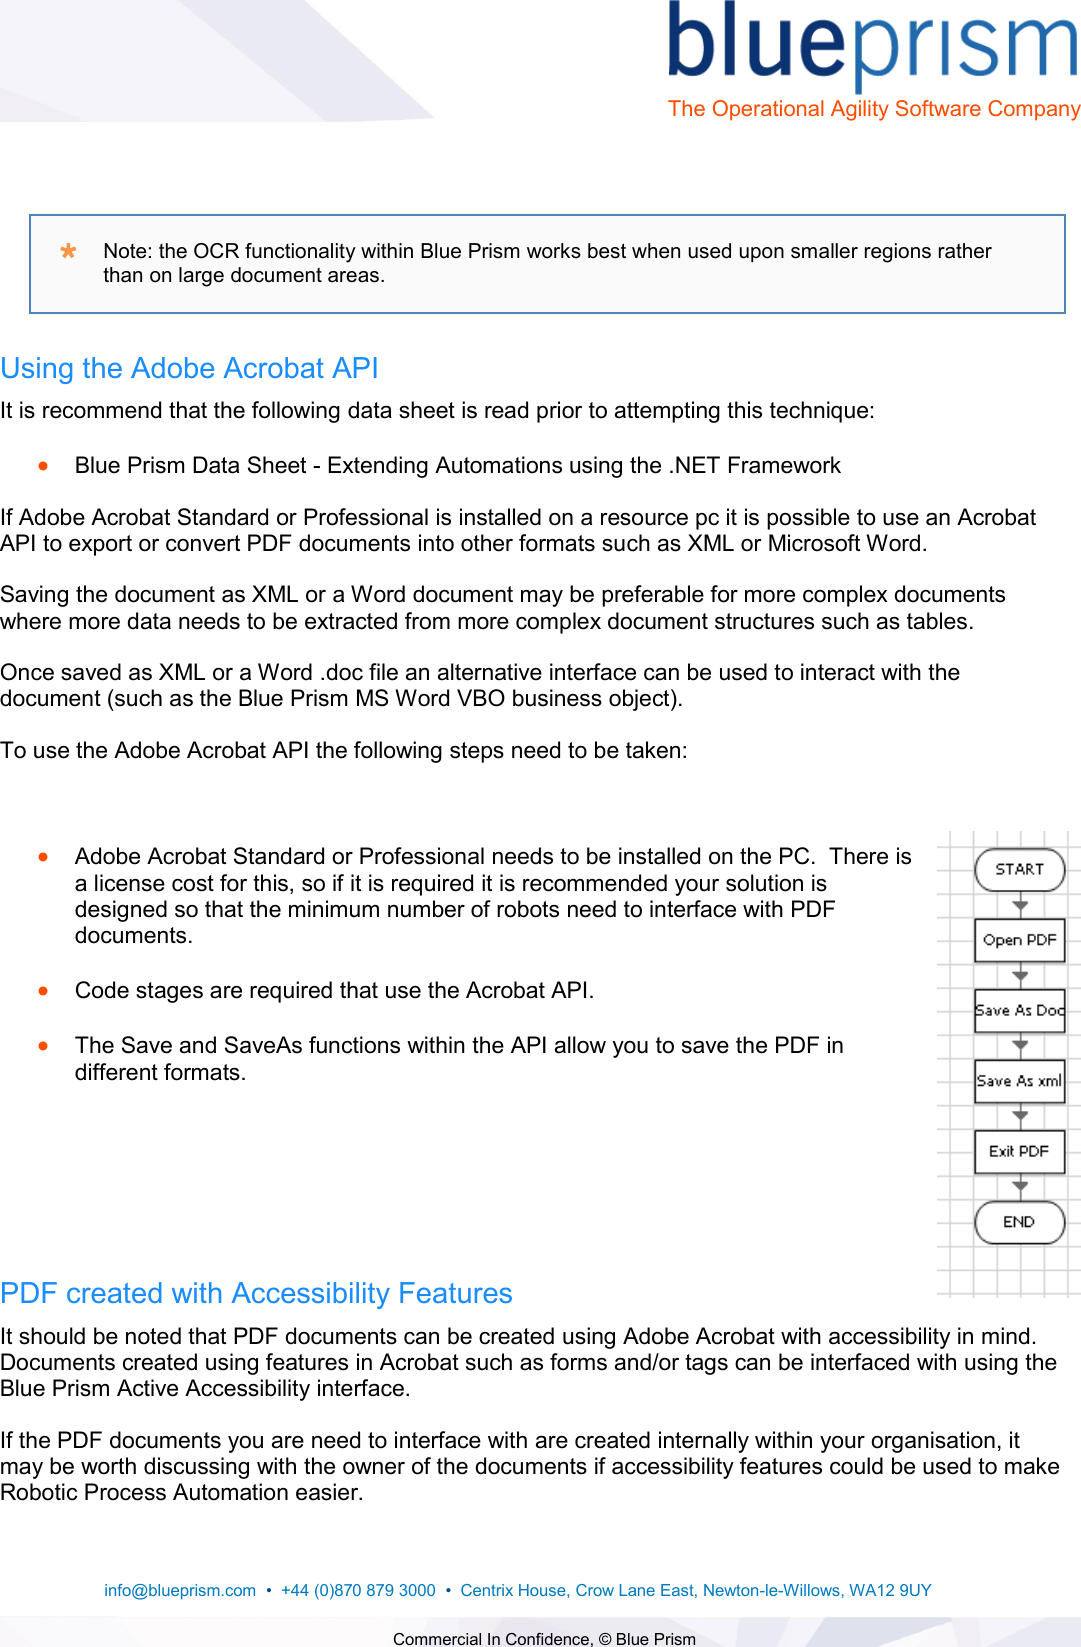 Page 3 of 5 - Guide - Interfacing With PDF S V1.0